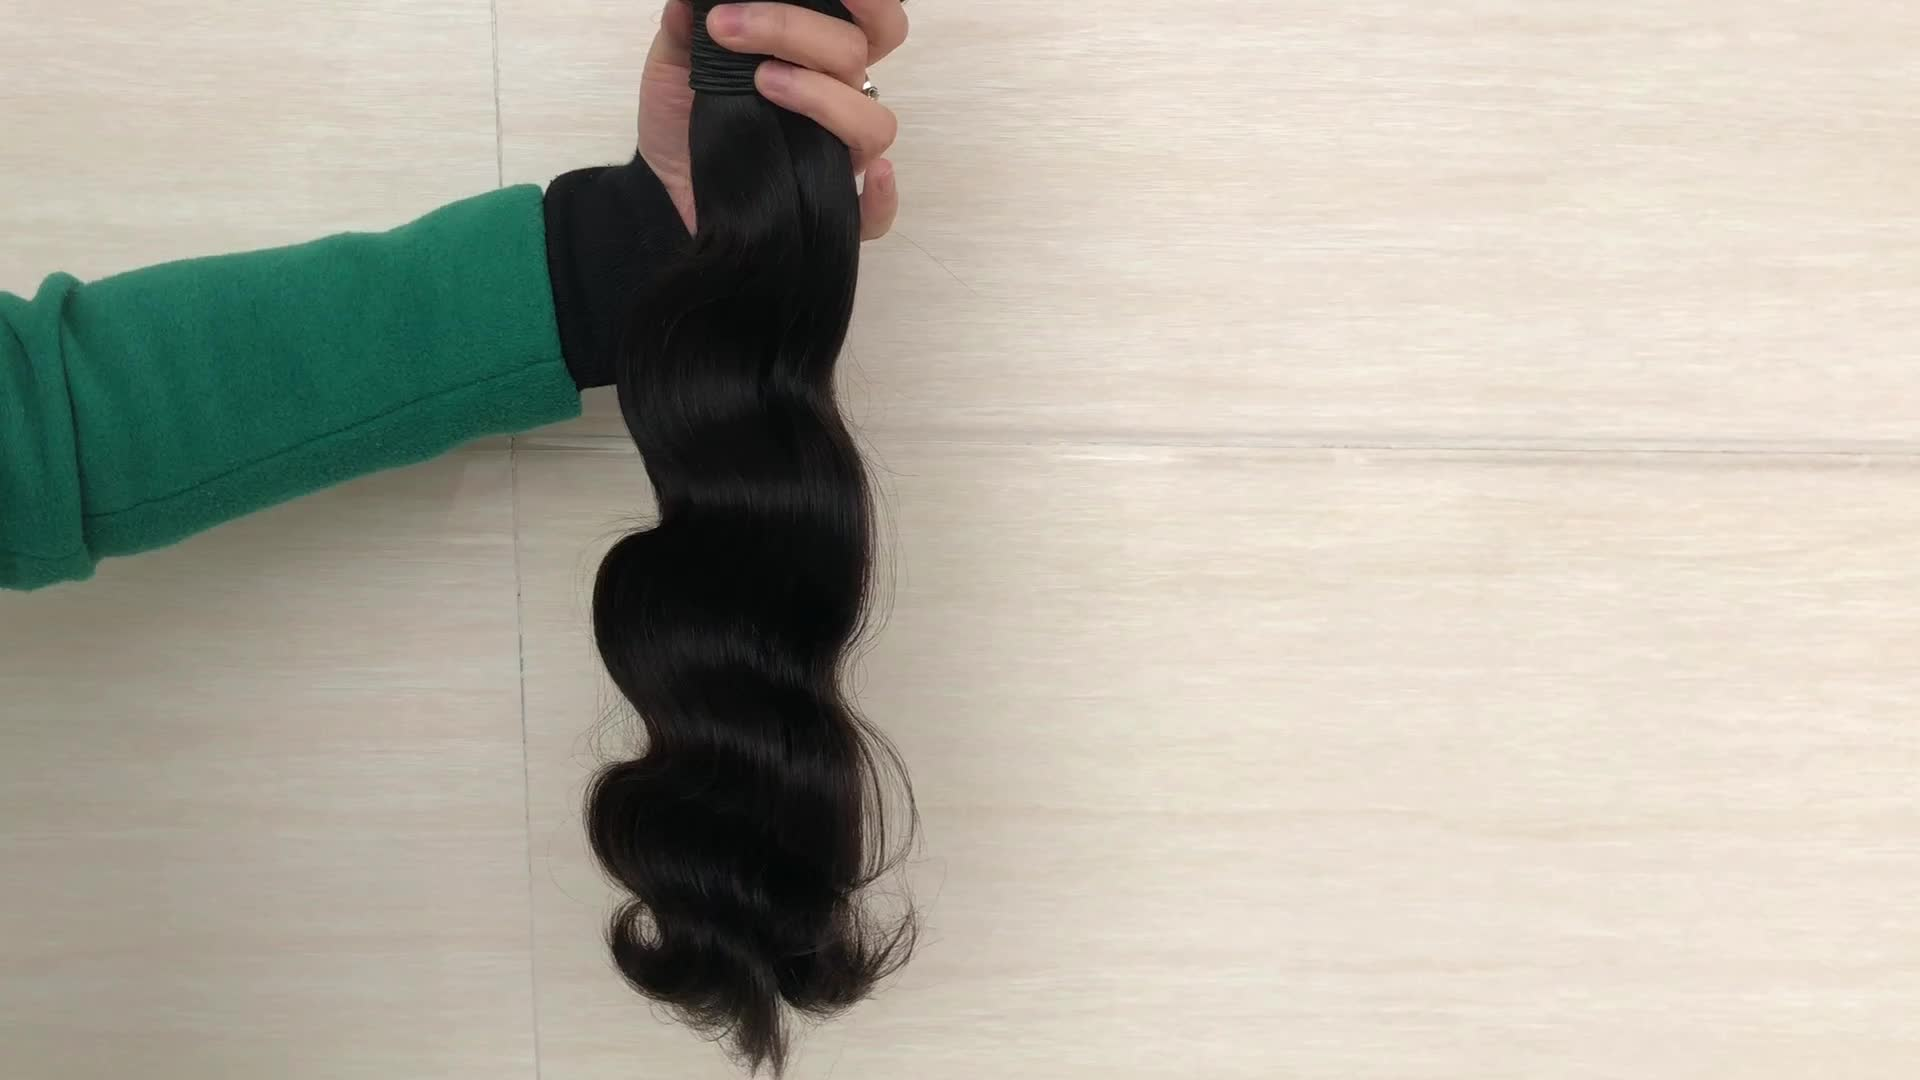 wholesale hair 8a grade virgin brazilian hair, original brazilian human hair extension,wholesale virgin human hair bundles